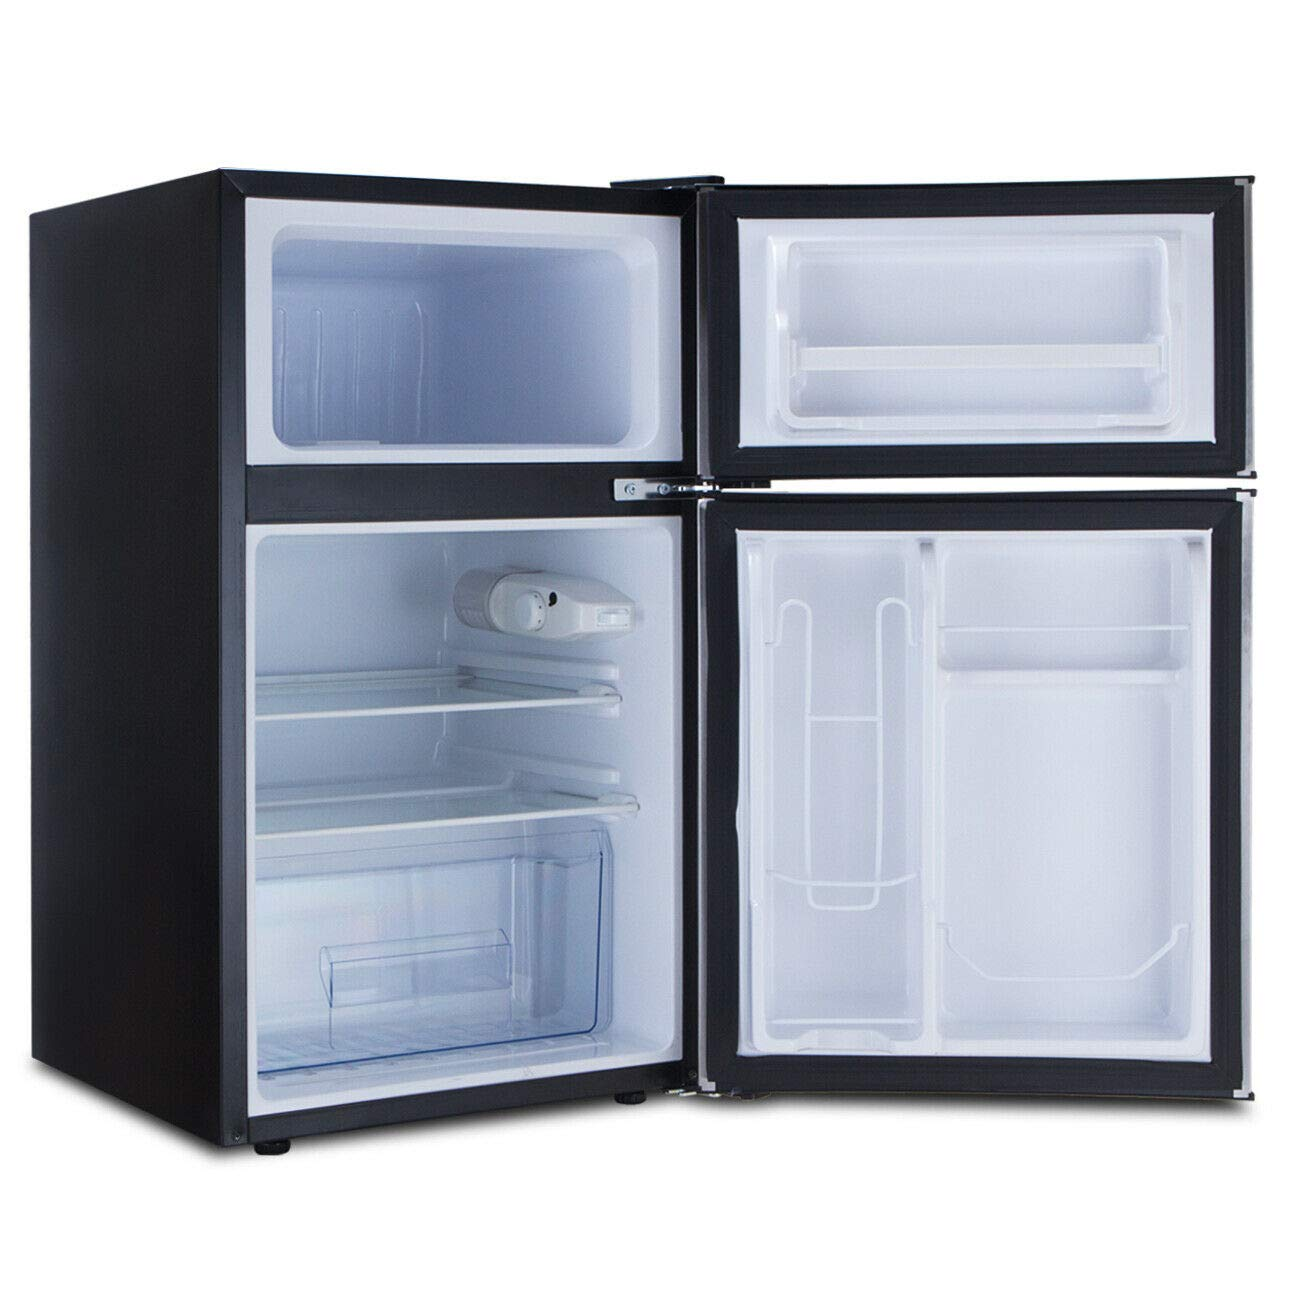 Ft Double Doors Compact Refrigerator Internal Freezer Cooler Small Mini Fridge Separate Freezer Compartment Large Capacity Ideal For Office Student Dormitories Wet Bars Apartments Condos 3.2 Cu